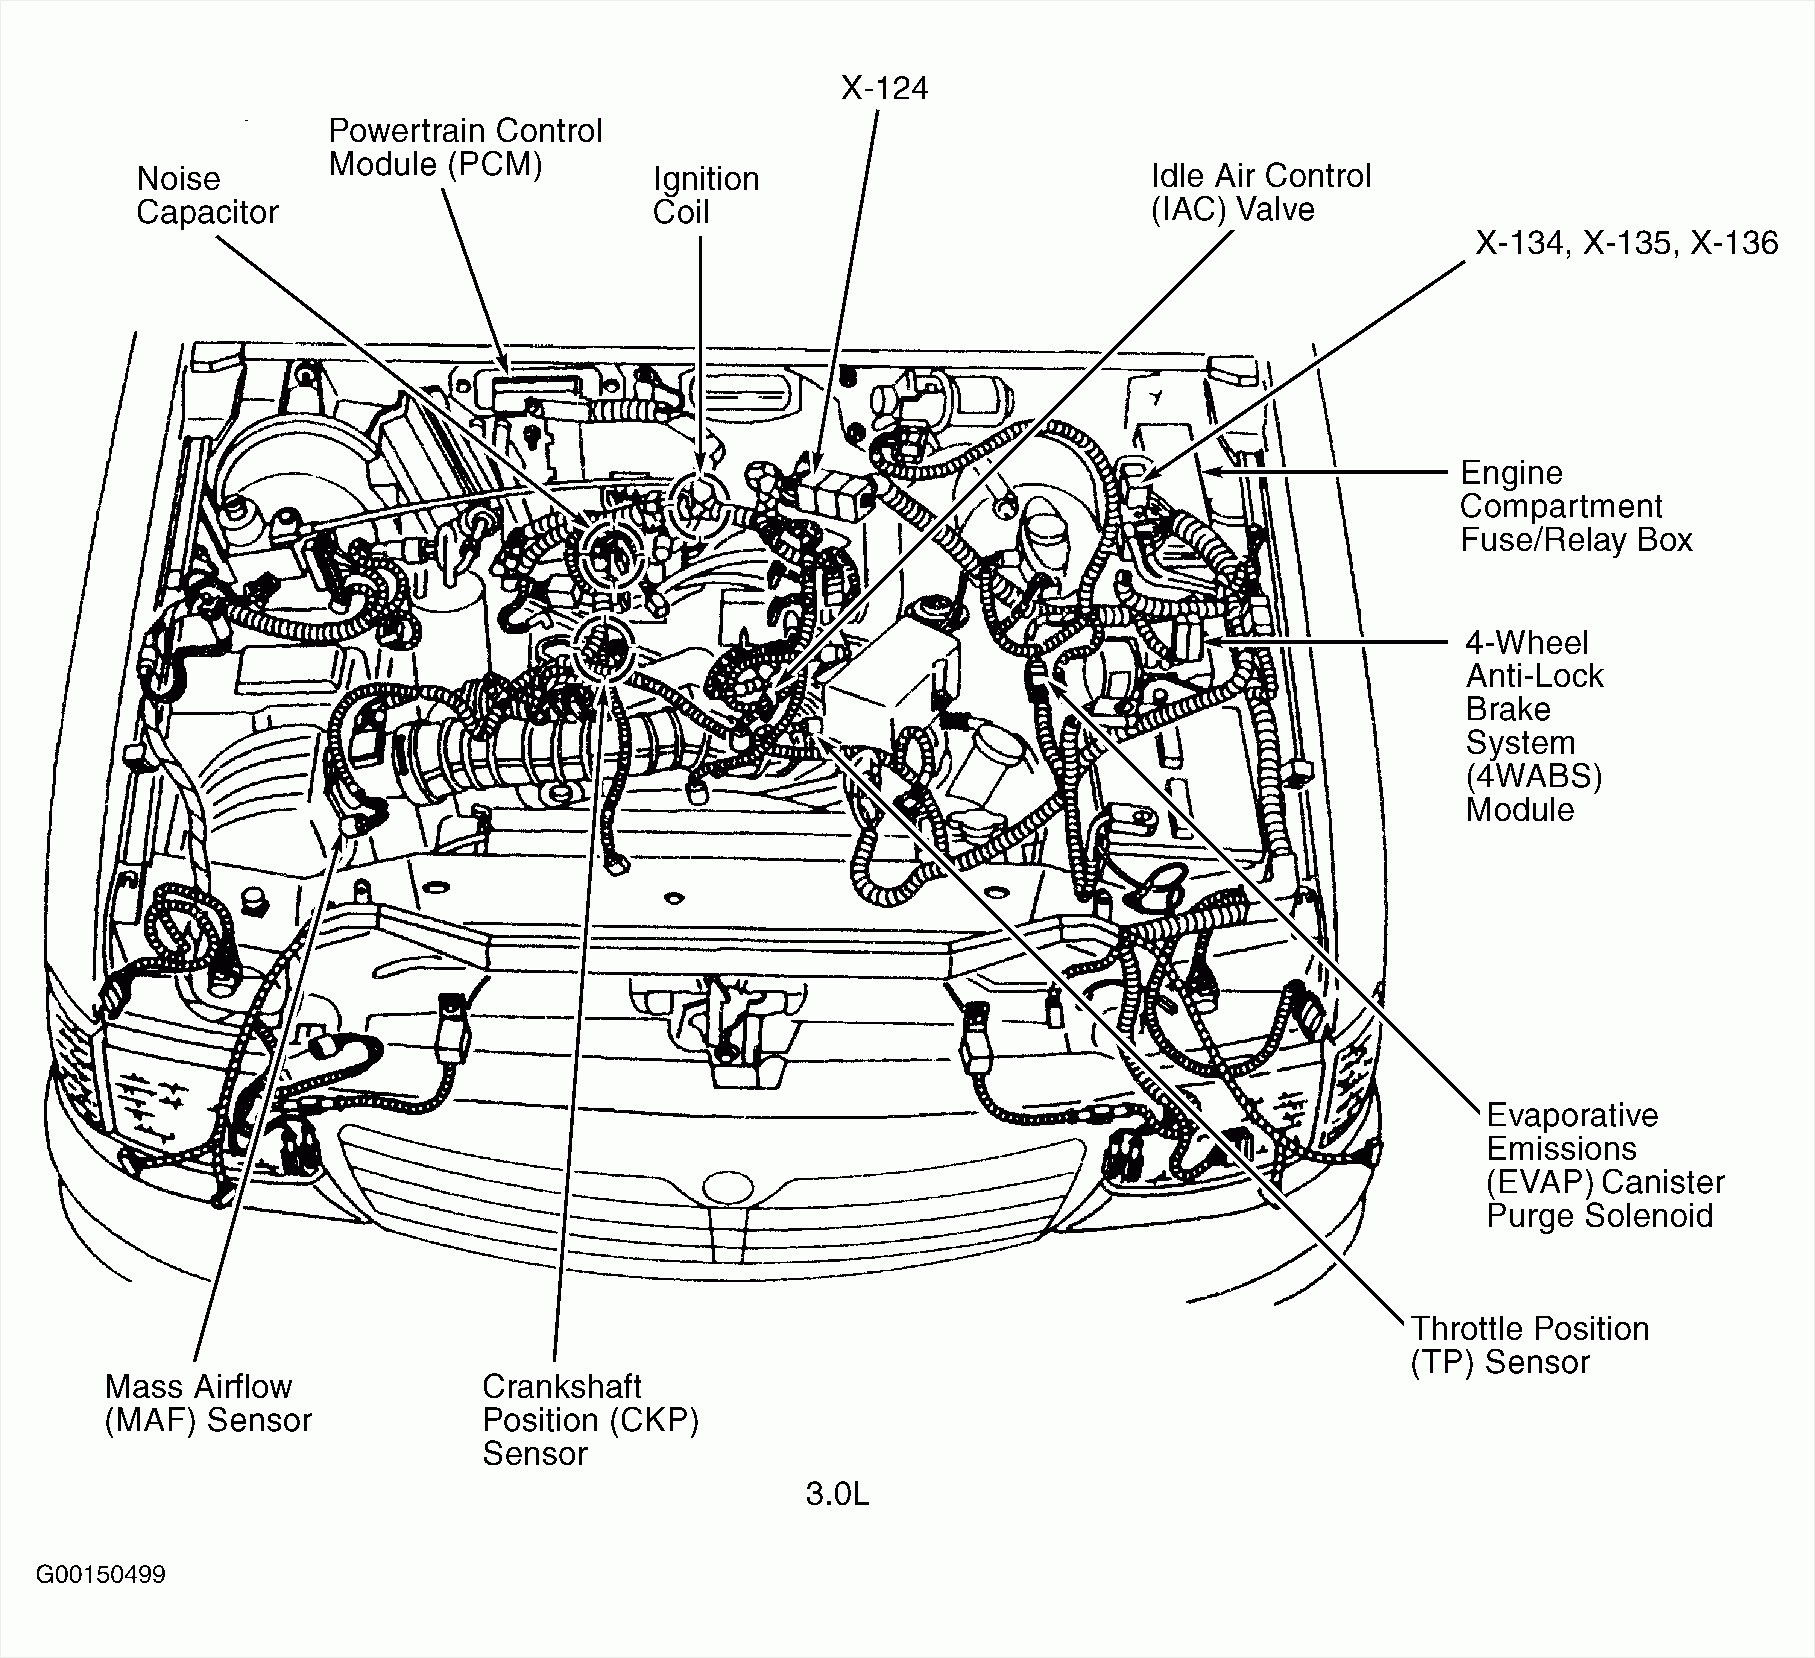 1997 pontiac grand am engine diagram - wiring diagram schema bound-energy-a  - bound-energy-a.atmosphereconcept.it  atmosphereconcept.it